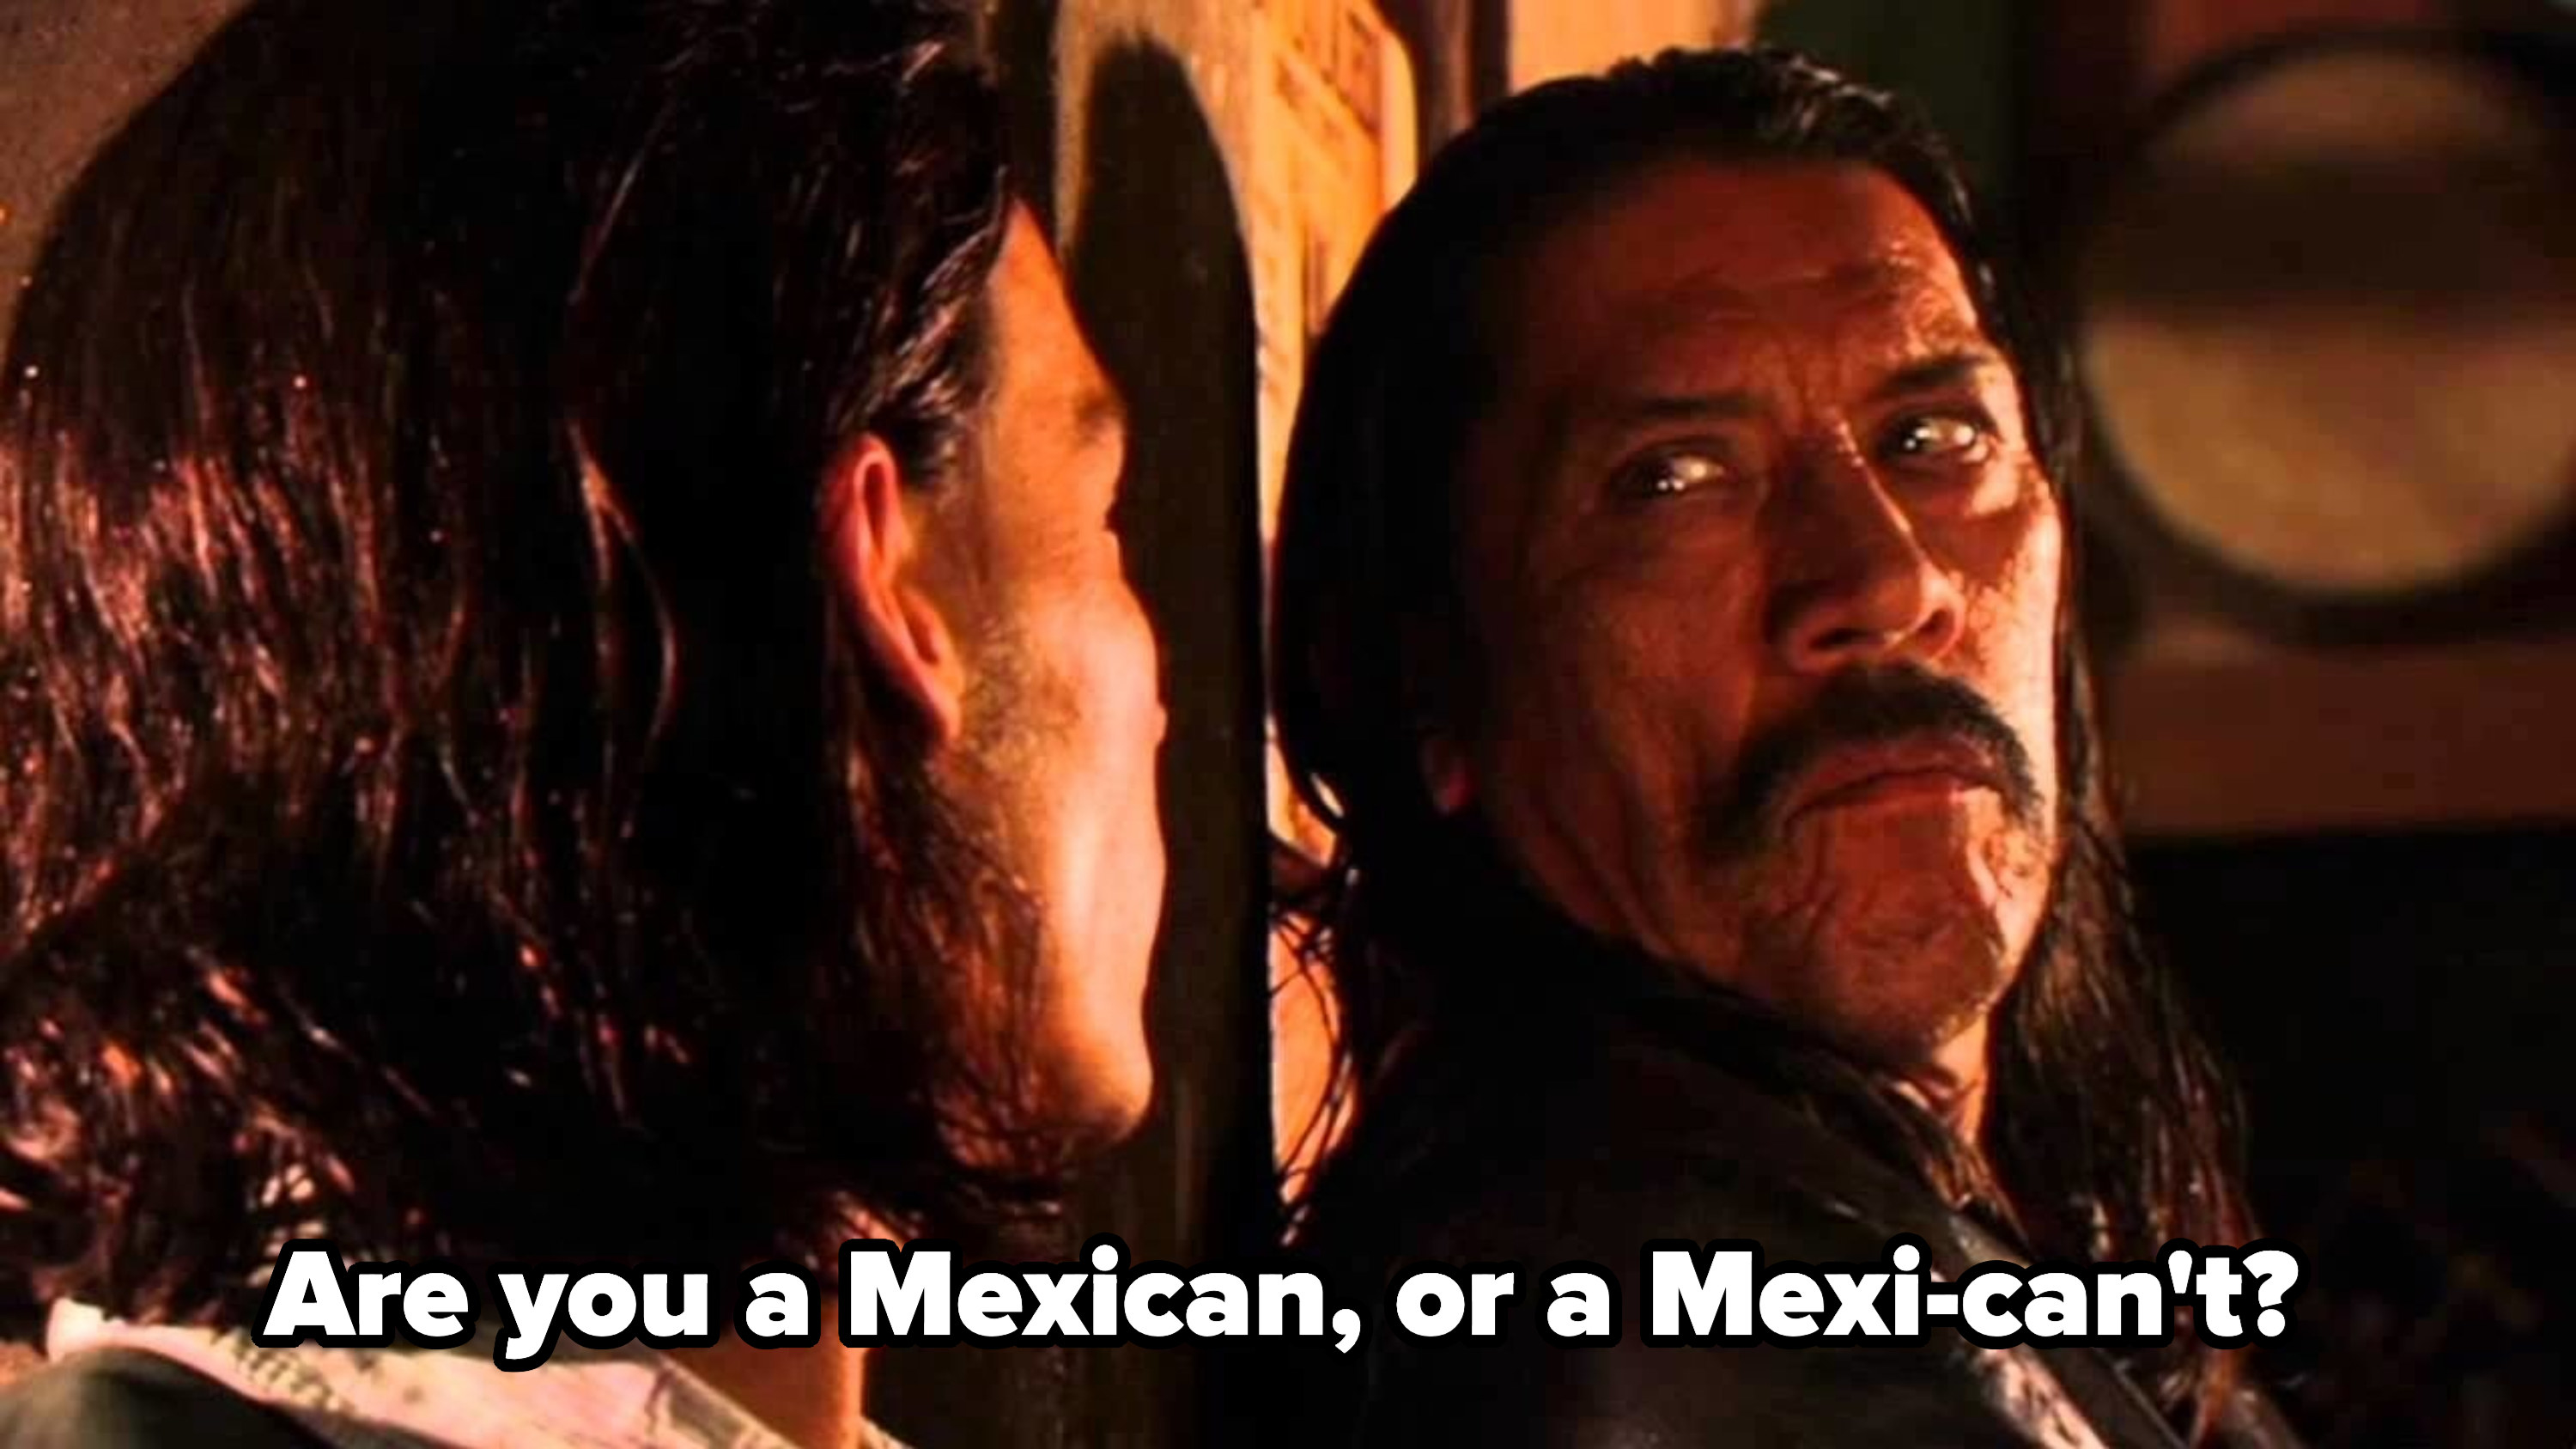 """Agent Sands telling Cucuy: Are you a Mexican, or a Mexi-can't?"""""""